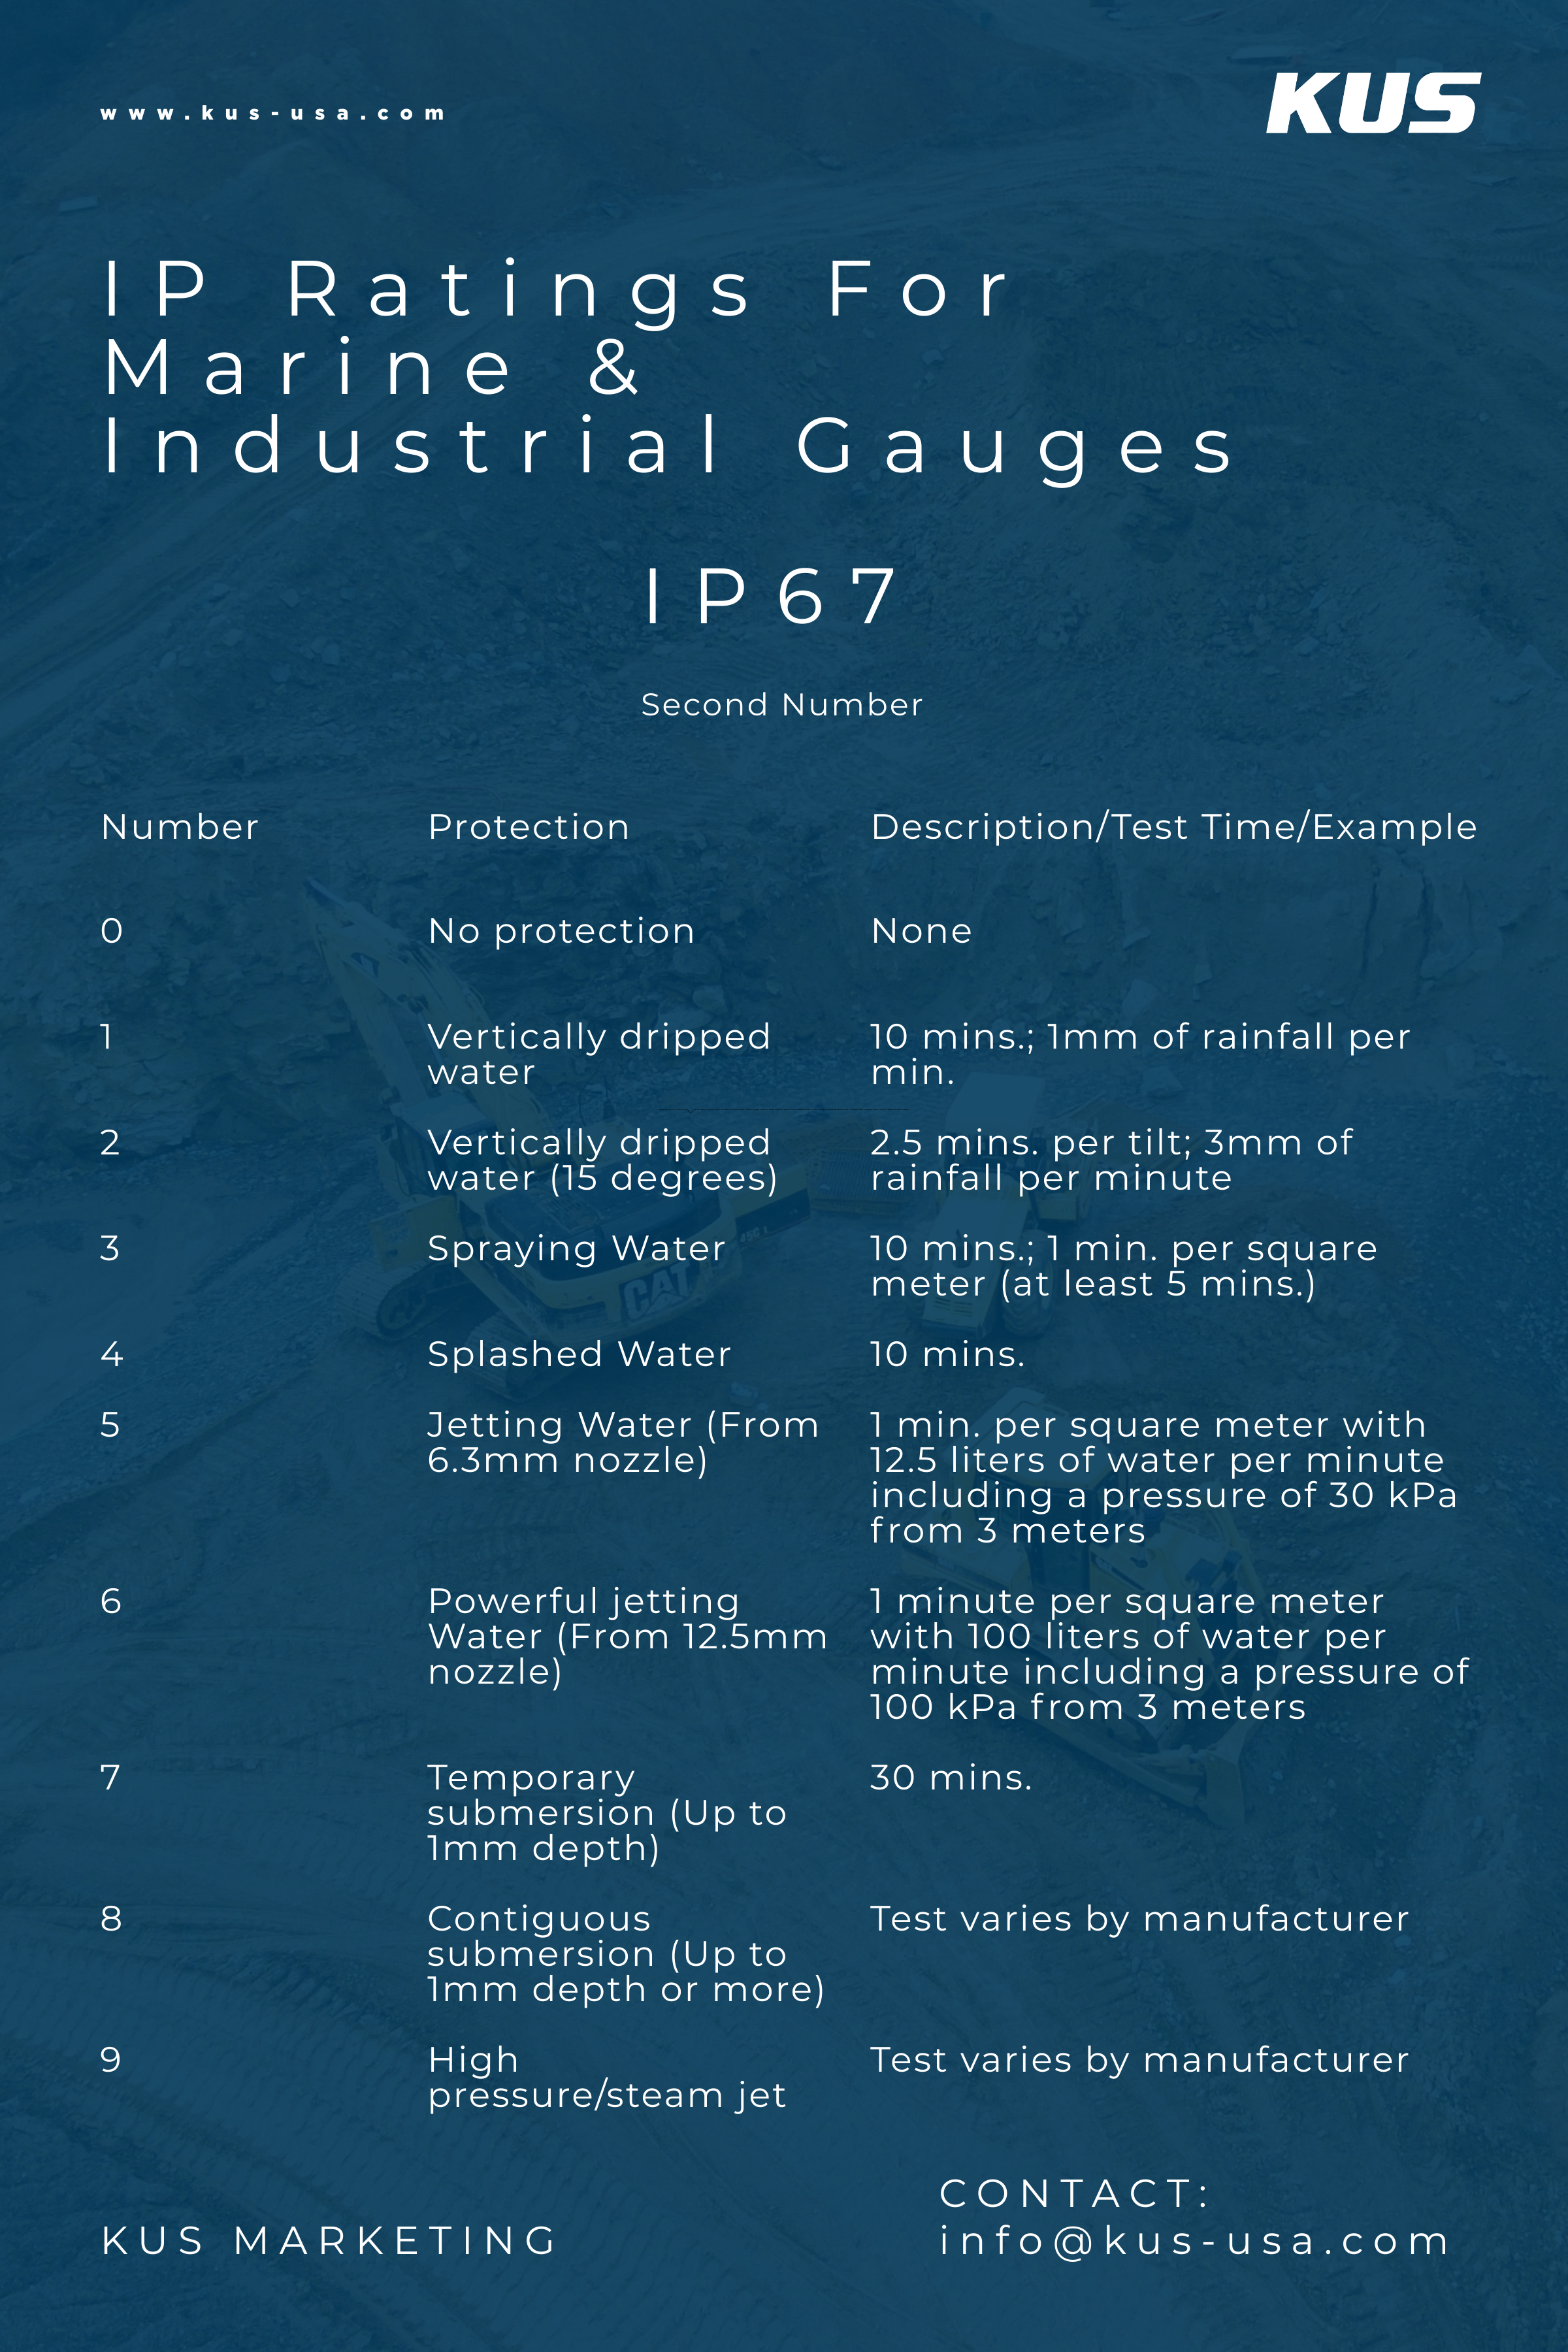 IP Ratings For Marine & Industrial Gauges (Second Number(